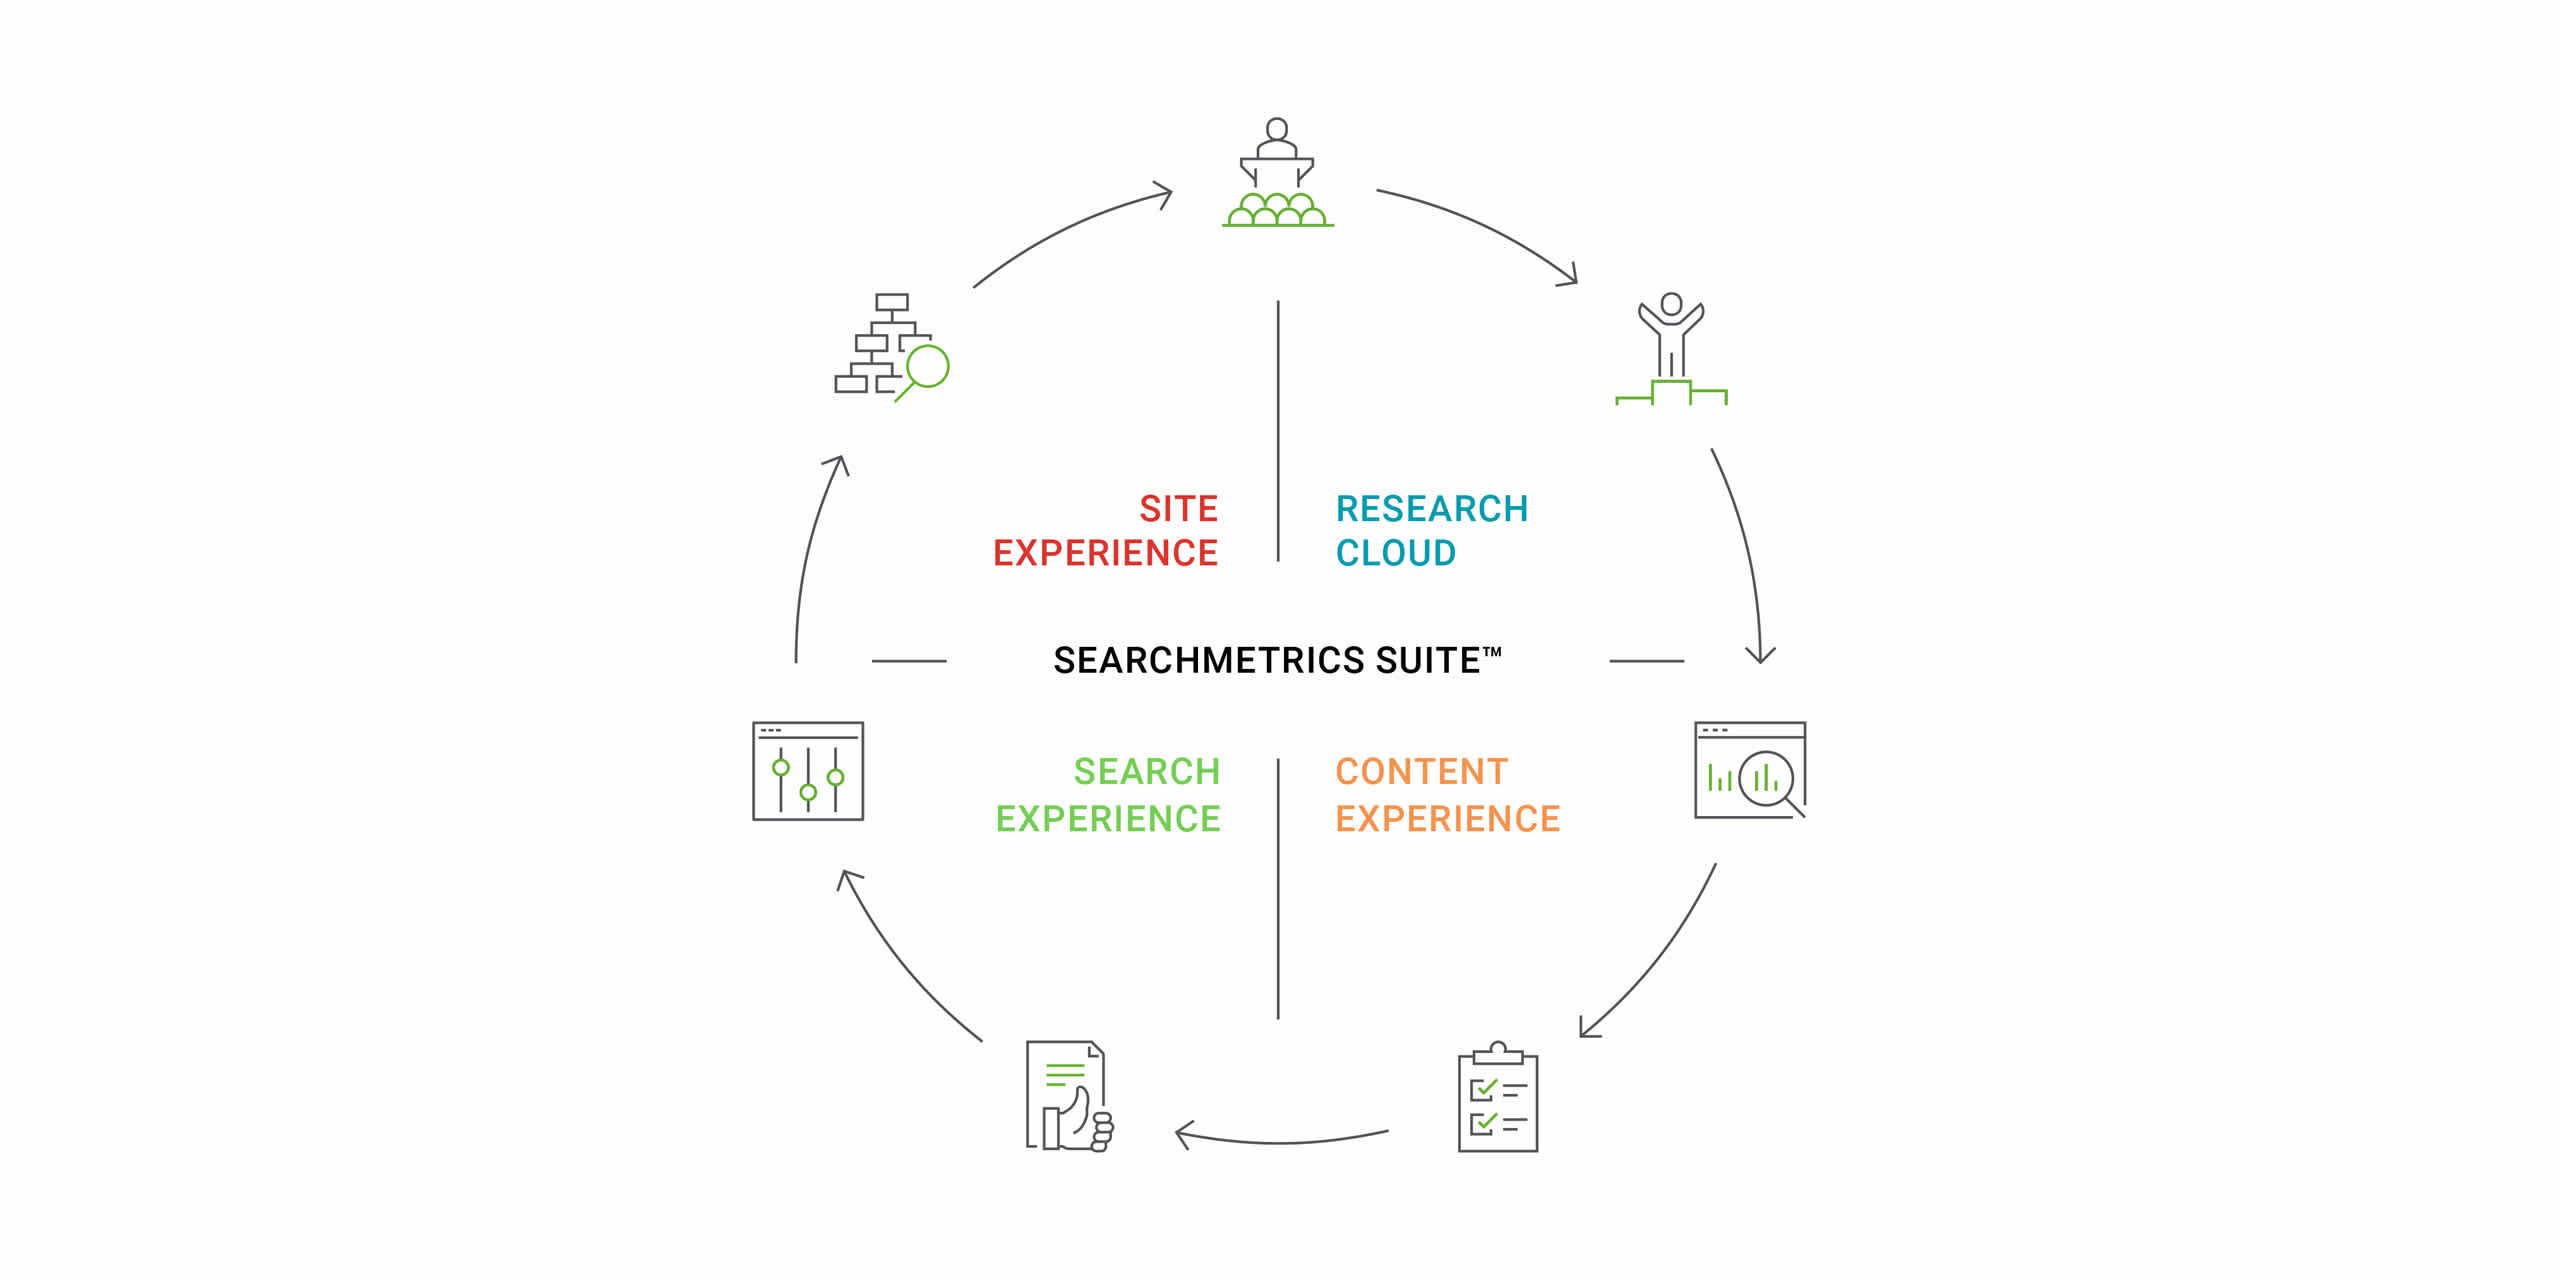 blog-searchmetrics-suite-7-diagramm